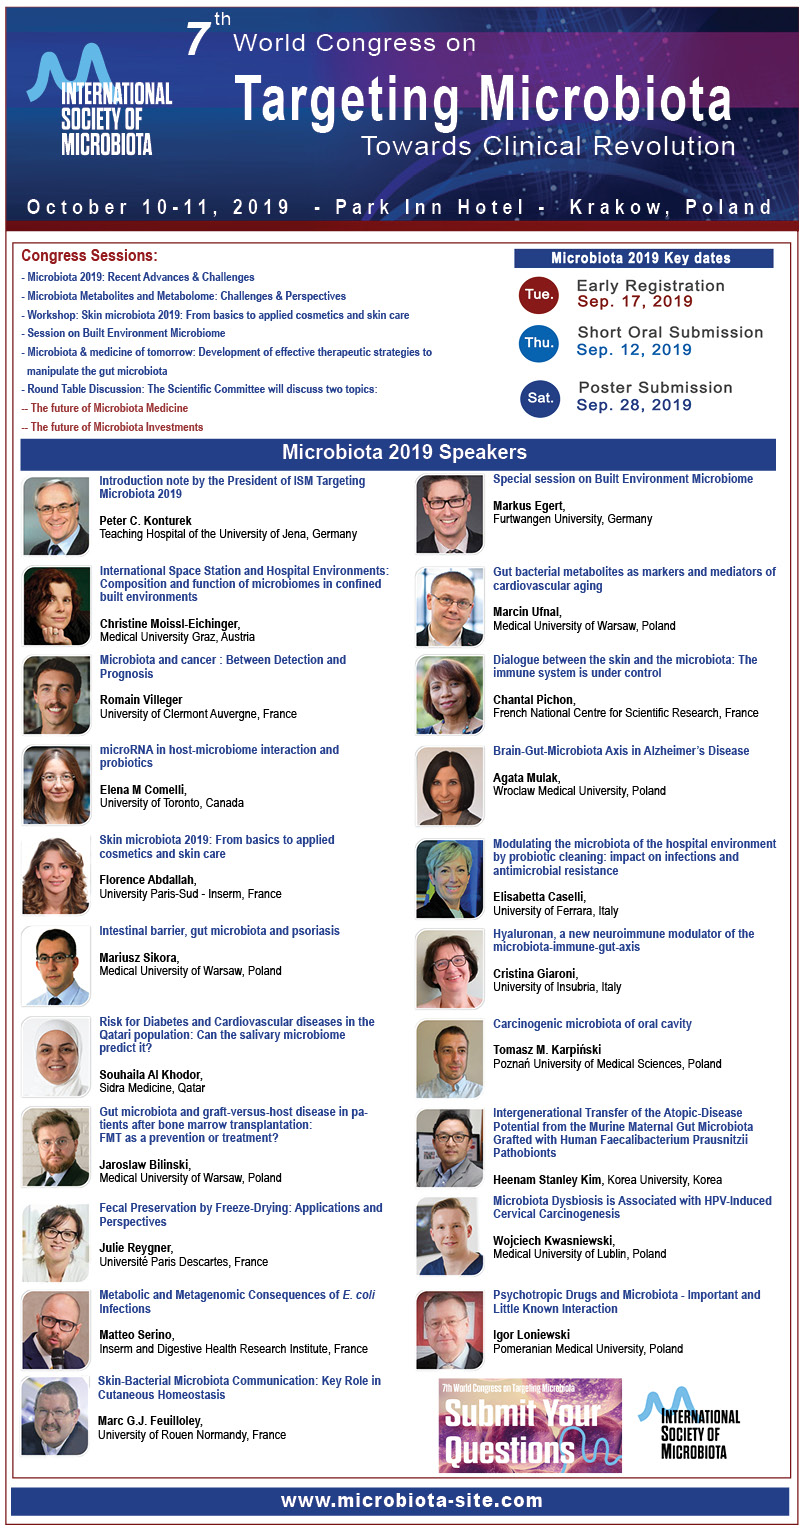 Microbiota Speakers 2019 speakers flyer V10 small